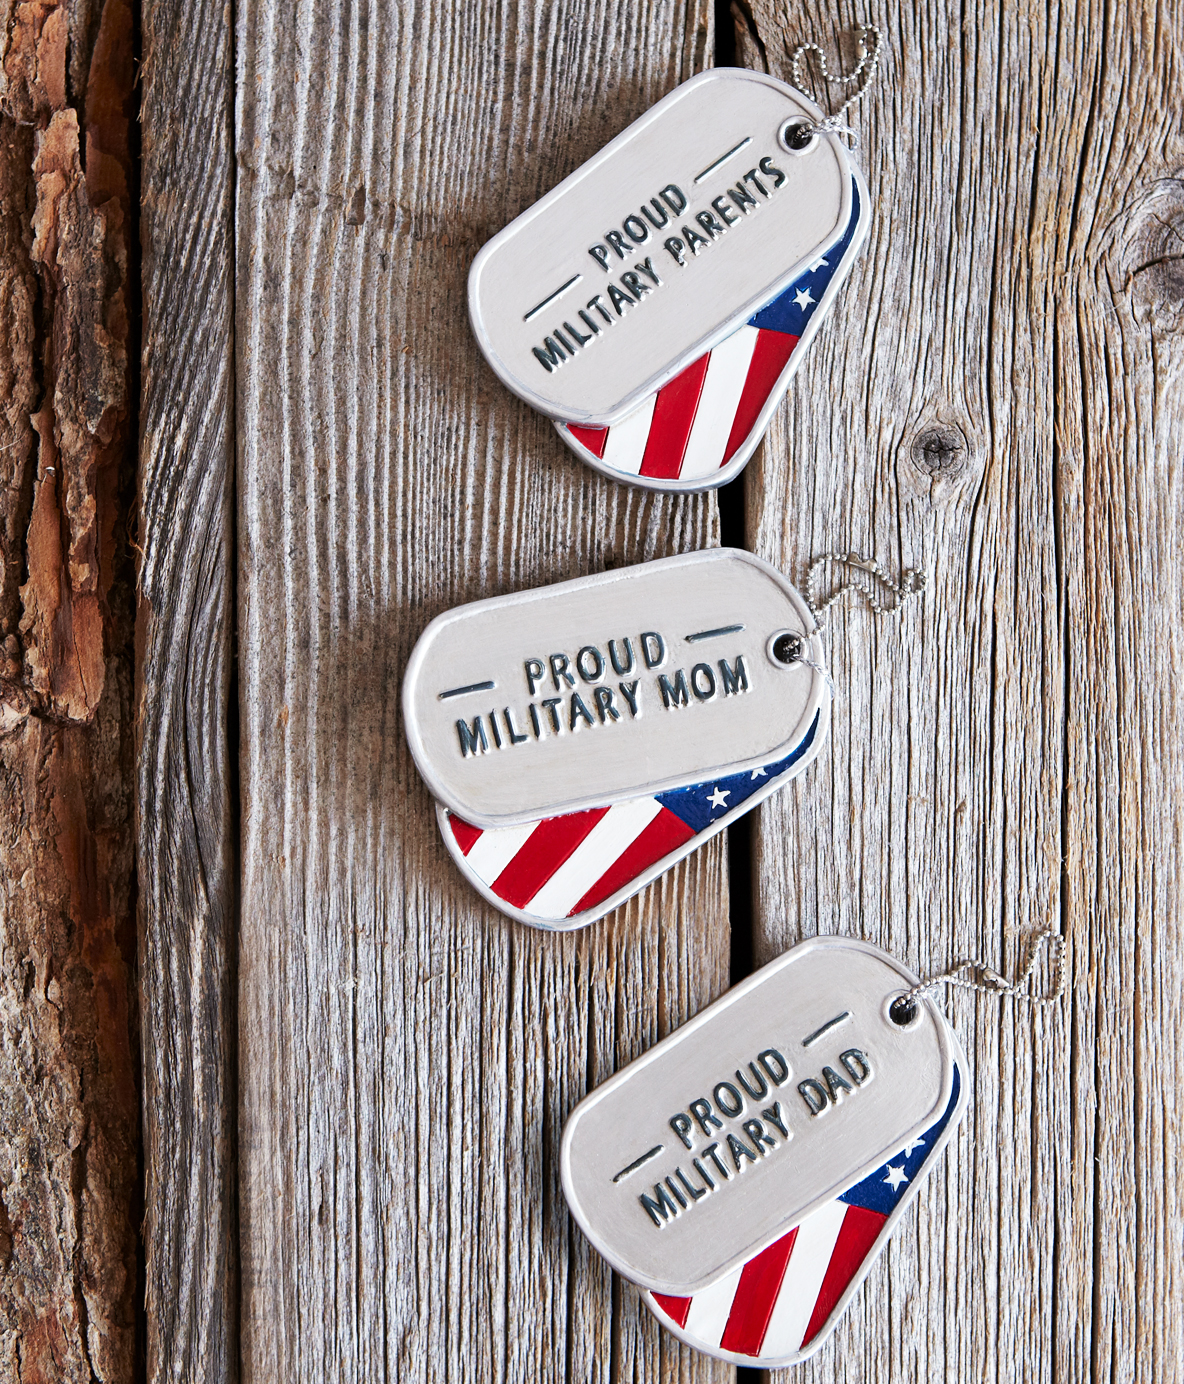 Styled shoot of Specialty Ornaments Military Dog Tag ornaments designed by Jacquelyn Arends; © Ganz/Midwest-CBK 2019